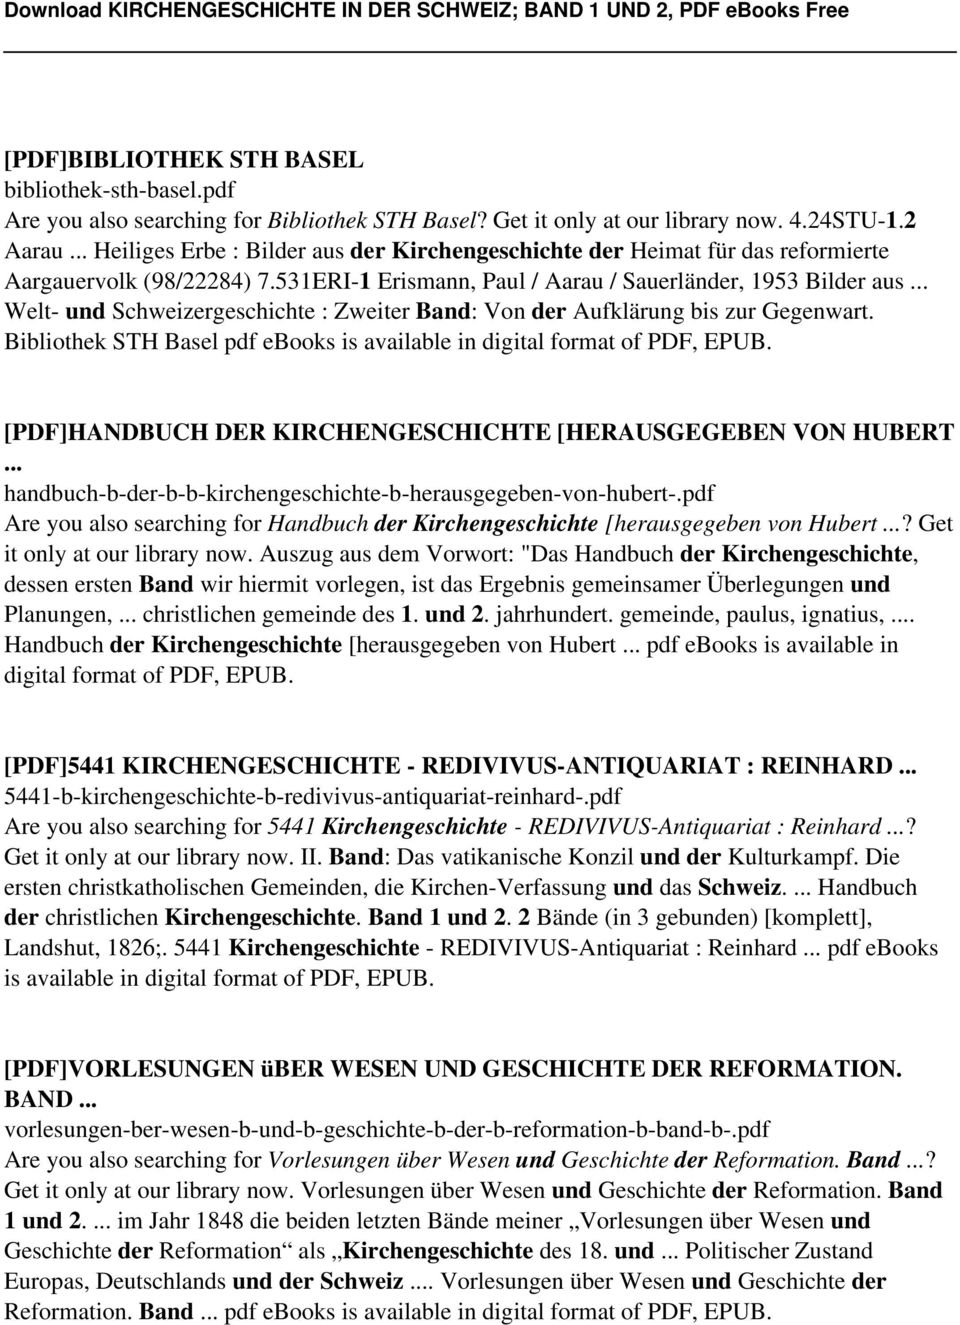 .. Welt- und Schweizergeschichte : Zweiter Band: Von der Aufklärung bis zur Gegenwart. Bibliothek STH Basel pdf ebooks is available in digital format of PDF, EPUB.